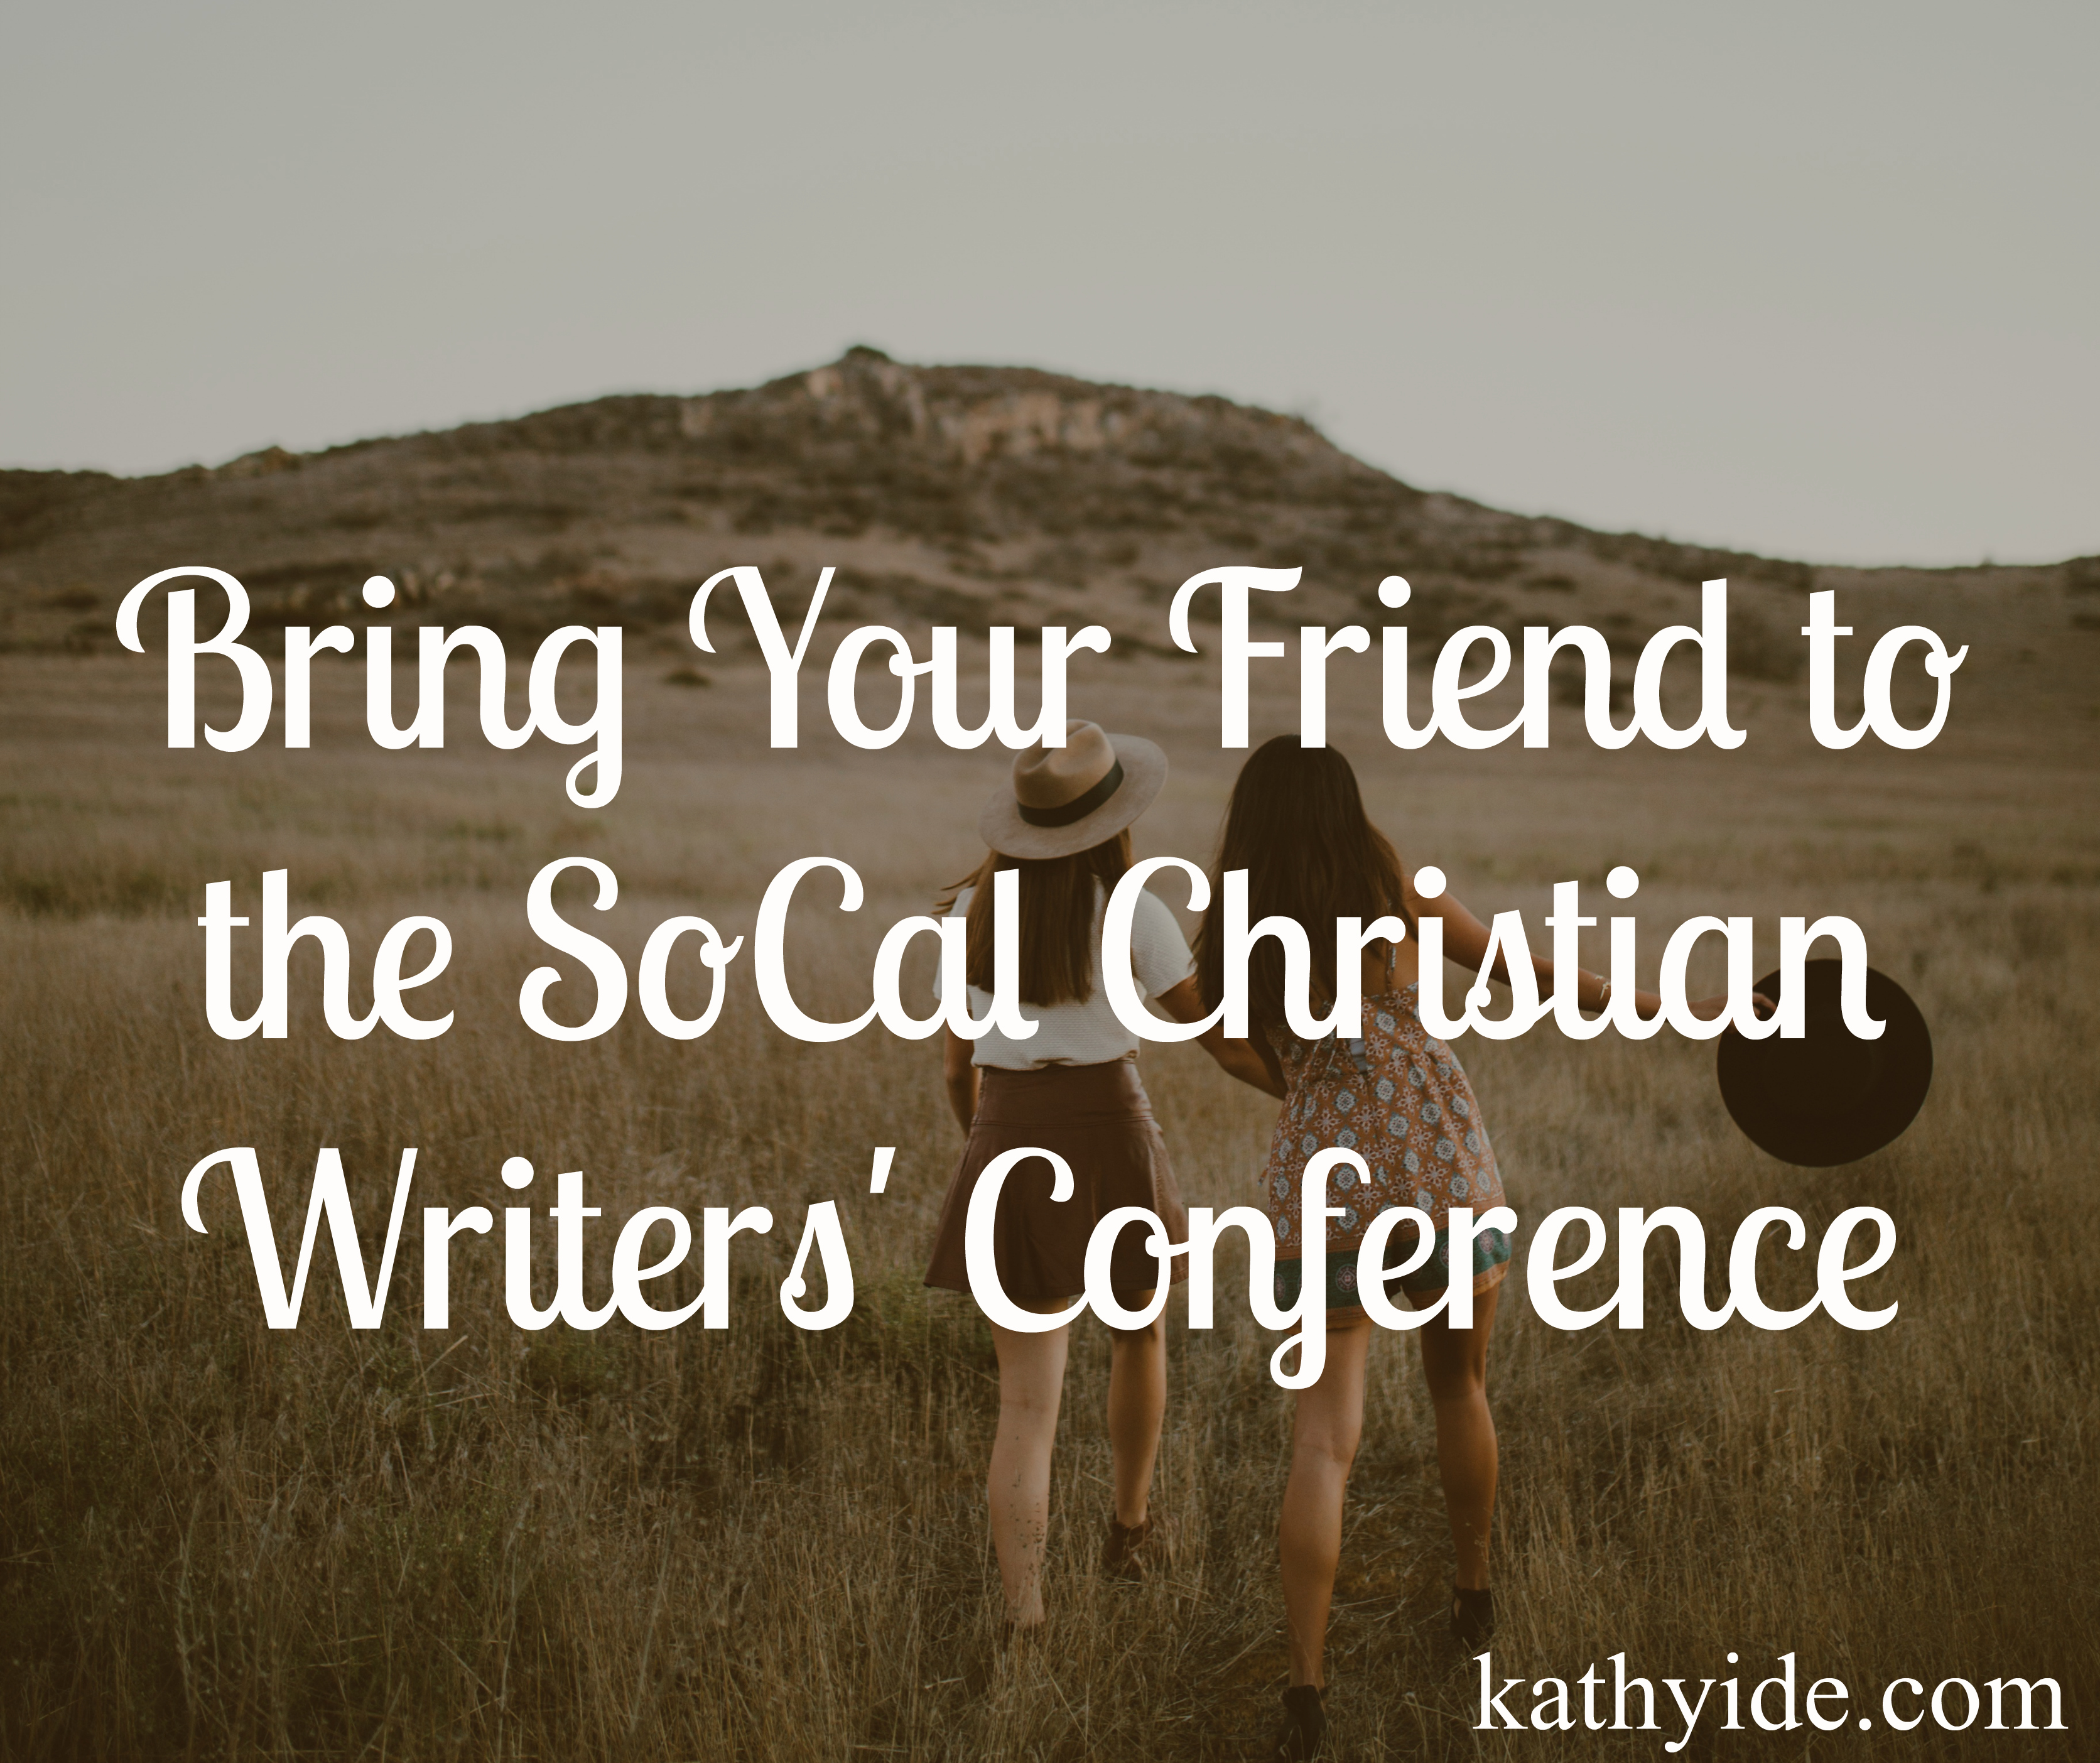 Bring a Friend to the SoCal Christian Writers' Conference